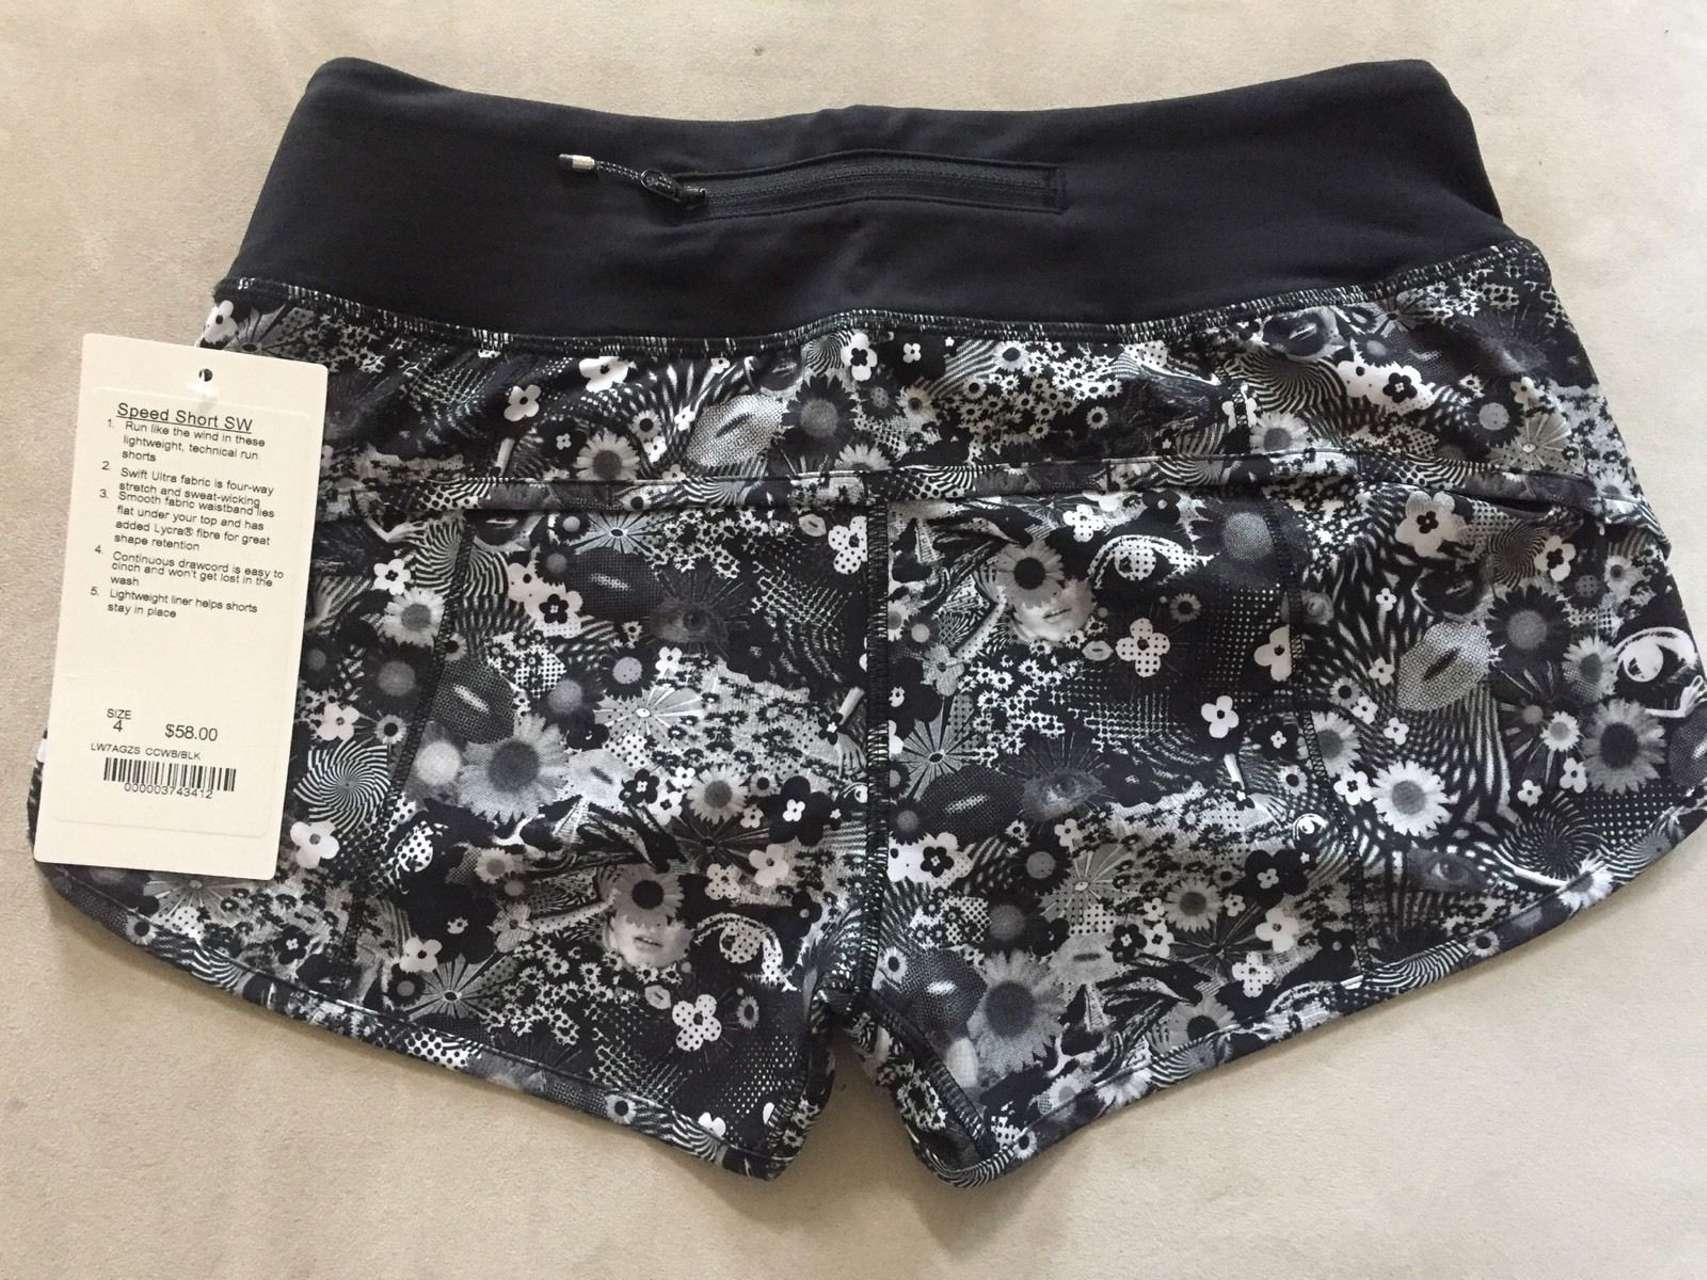 Lululemon Speed Short *SW - 2017 Seawheeze - Counter Culture White Black / Black